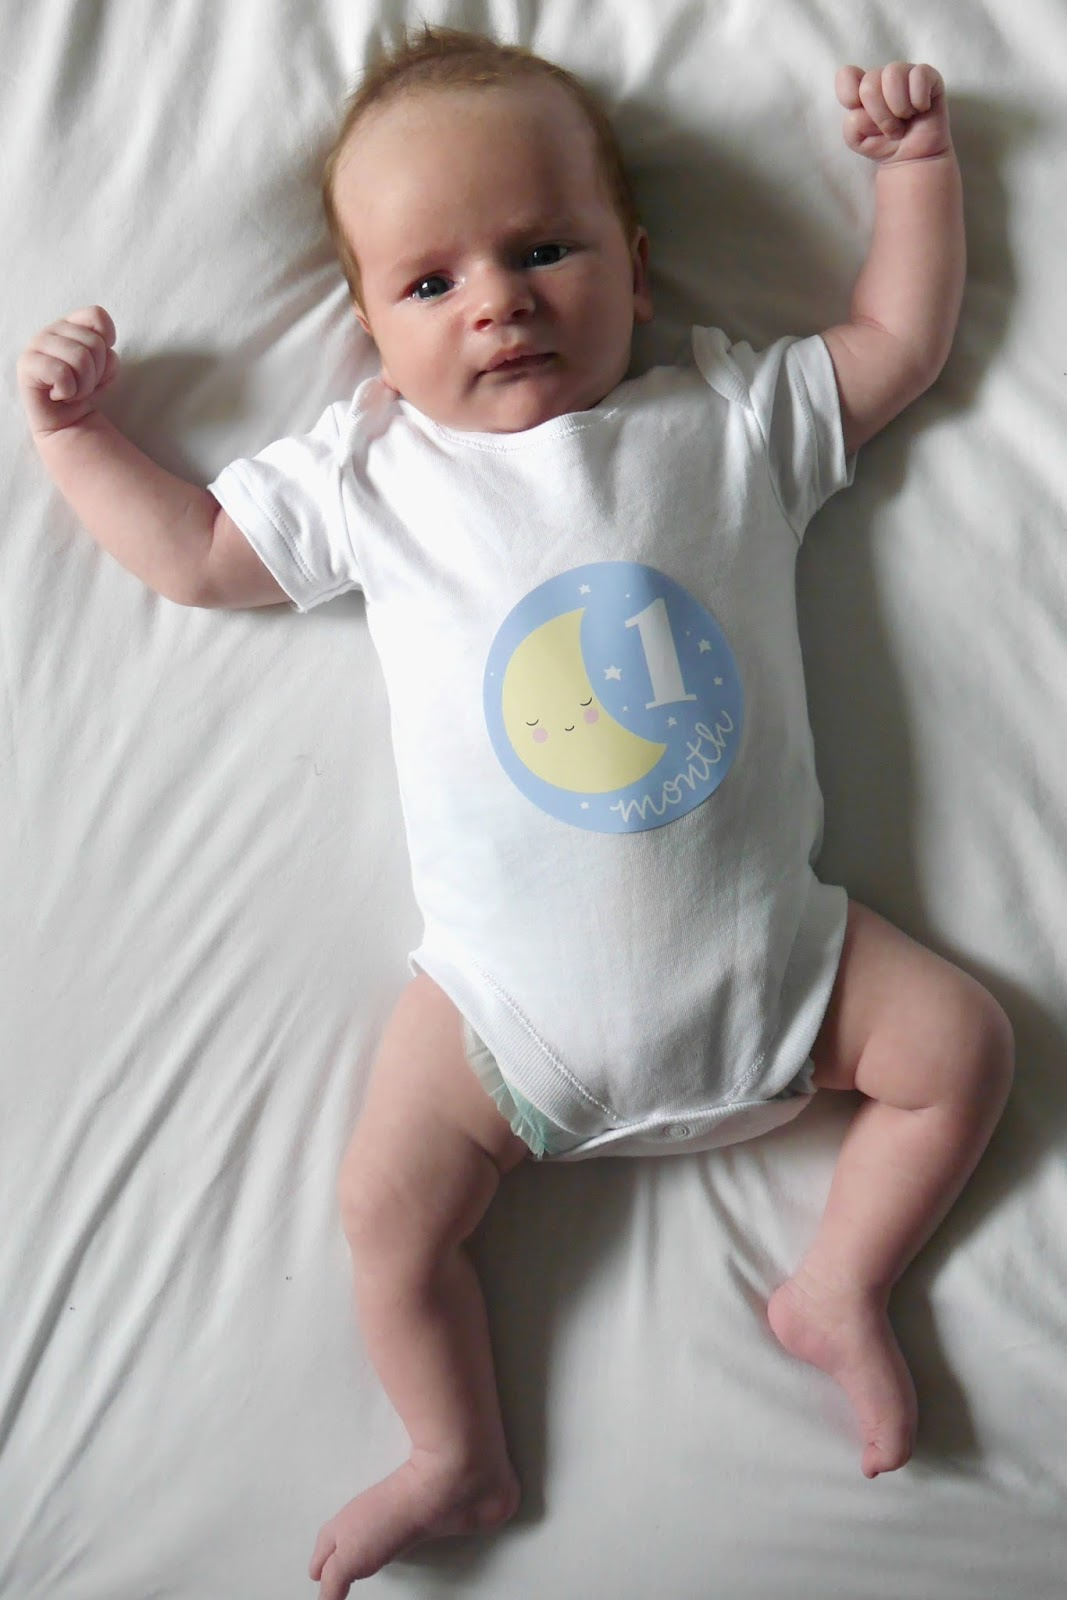 DEAR LUCAS: YOU ARE ONE MONTH OLD!